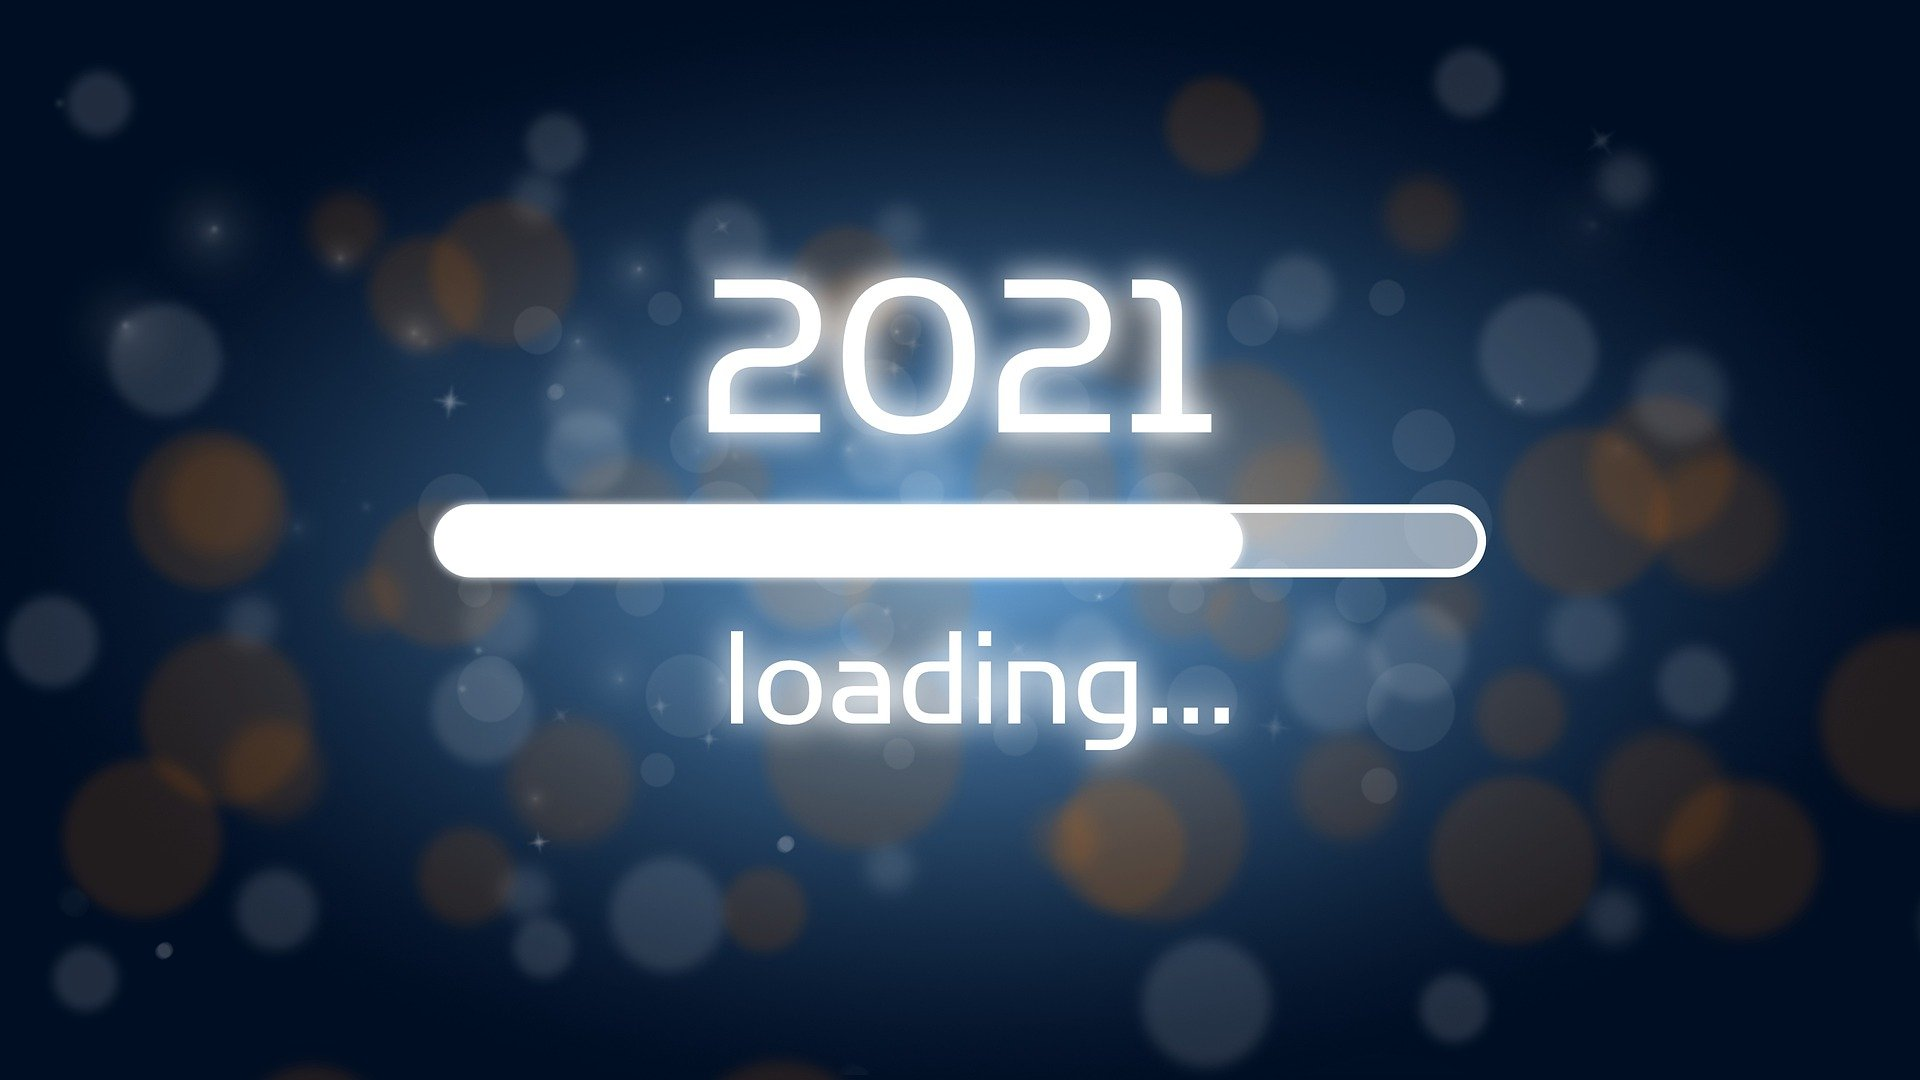 Will Agility Save 2021?